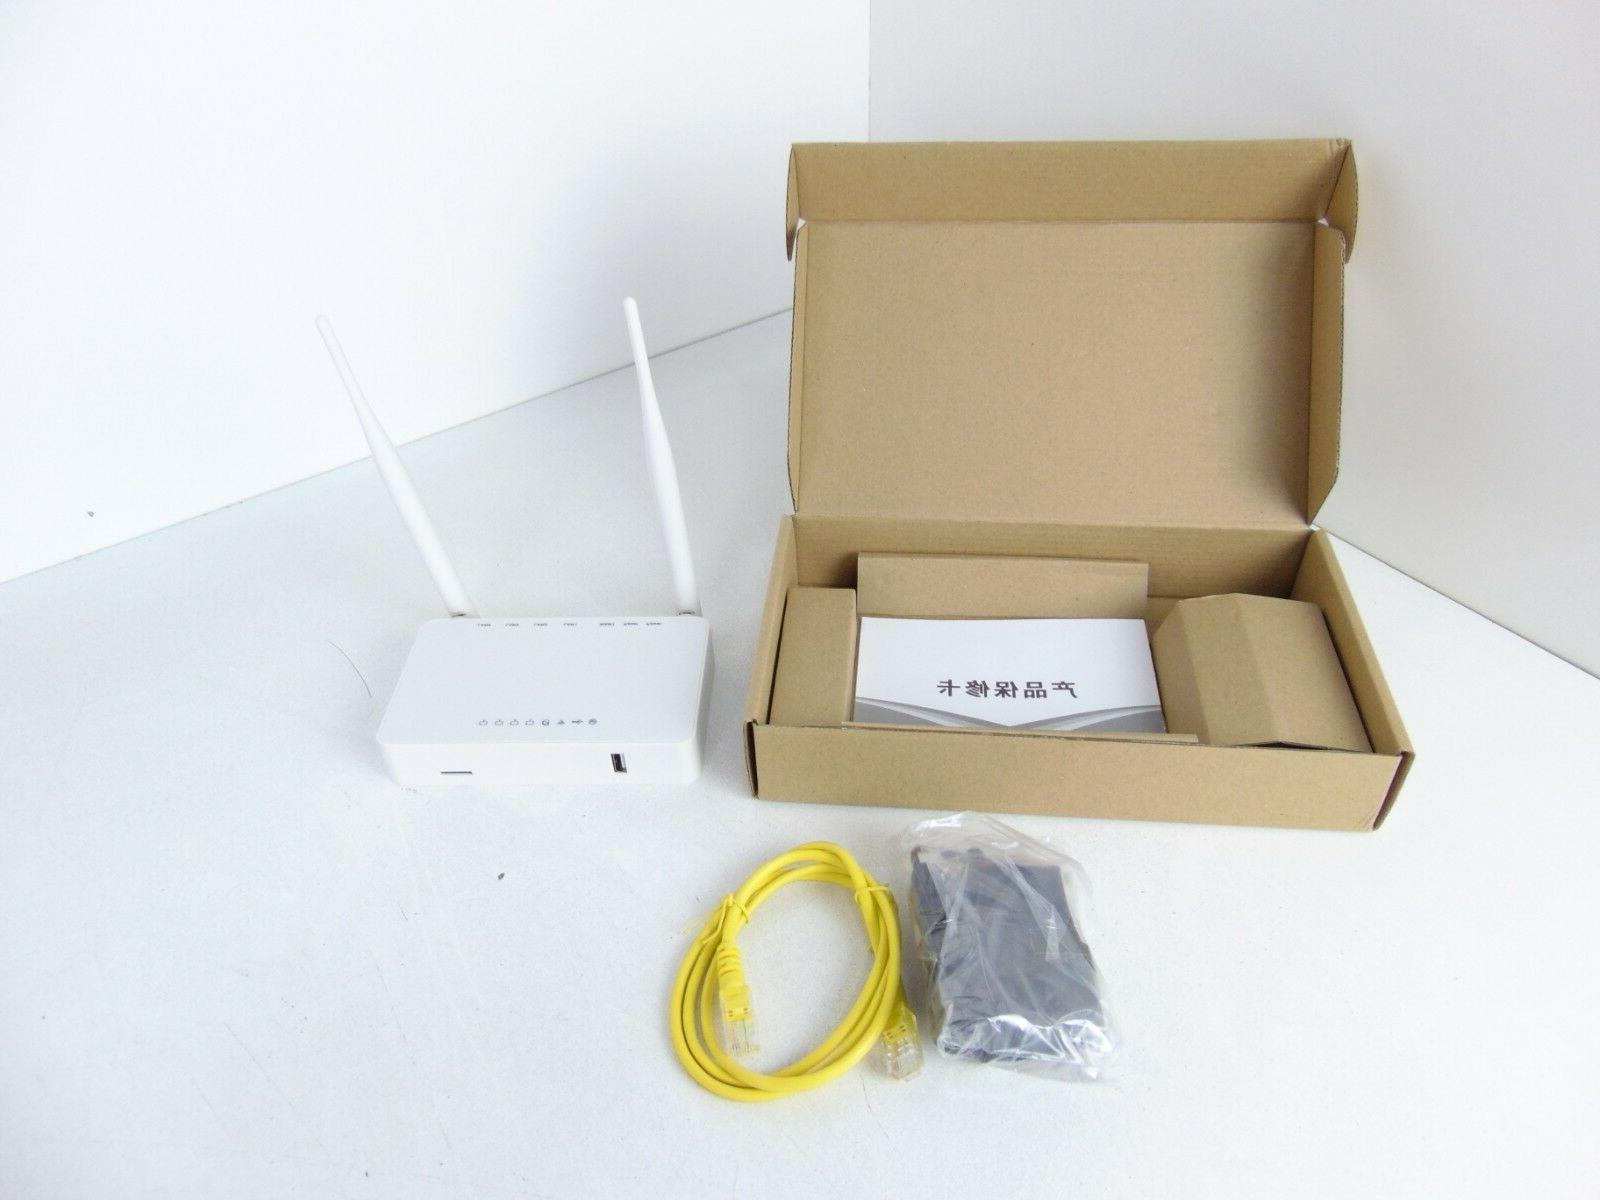 ZBT ZBT-WE826-S WiFi Router NEW IN BOX LOT OF